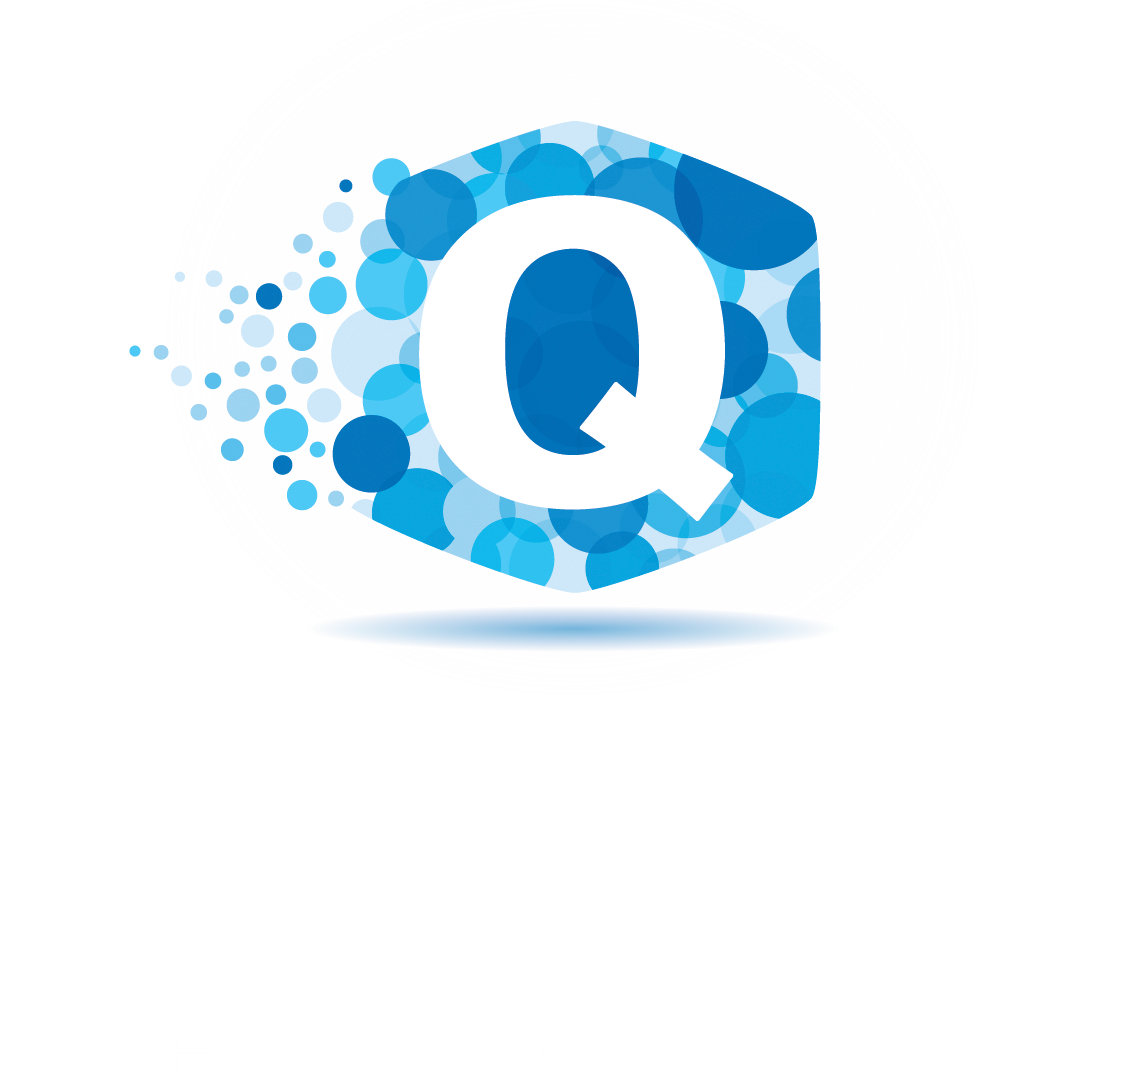 Qico: Fire to Water